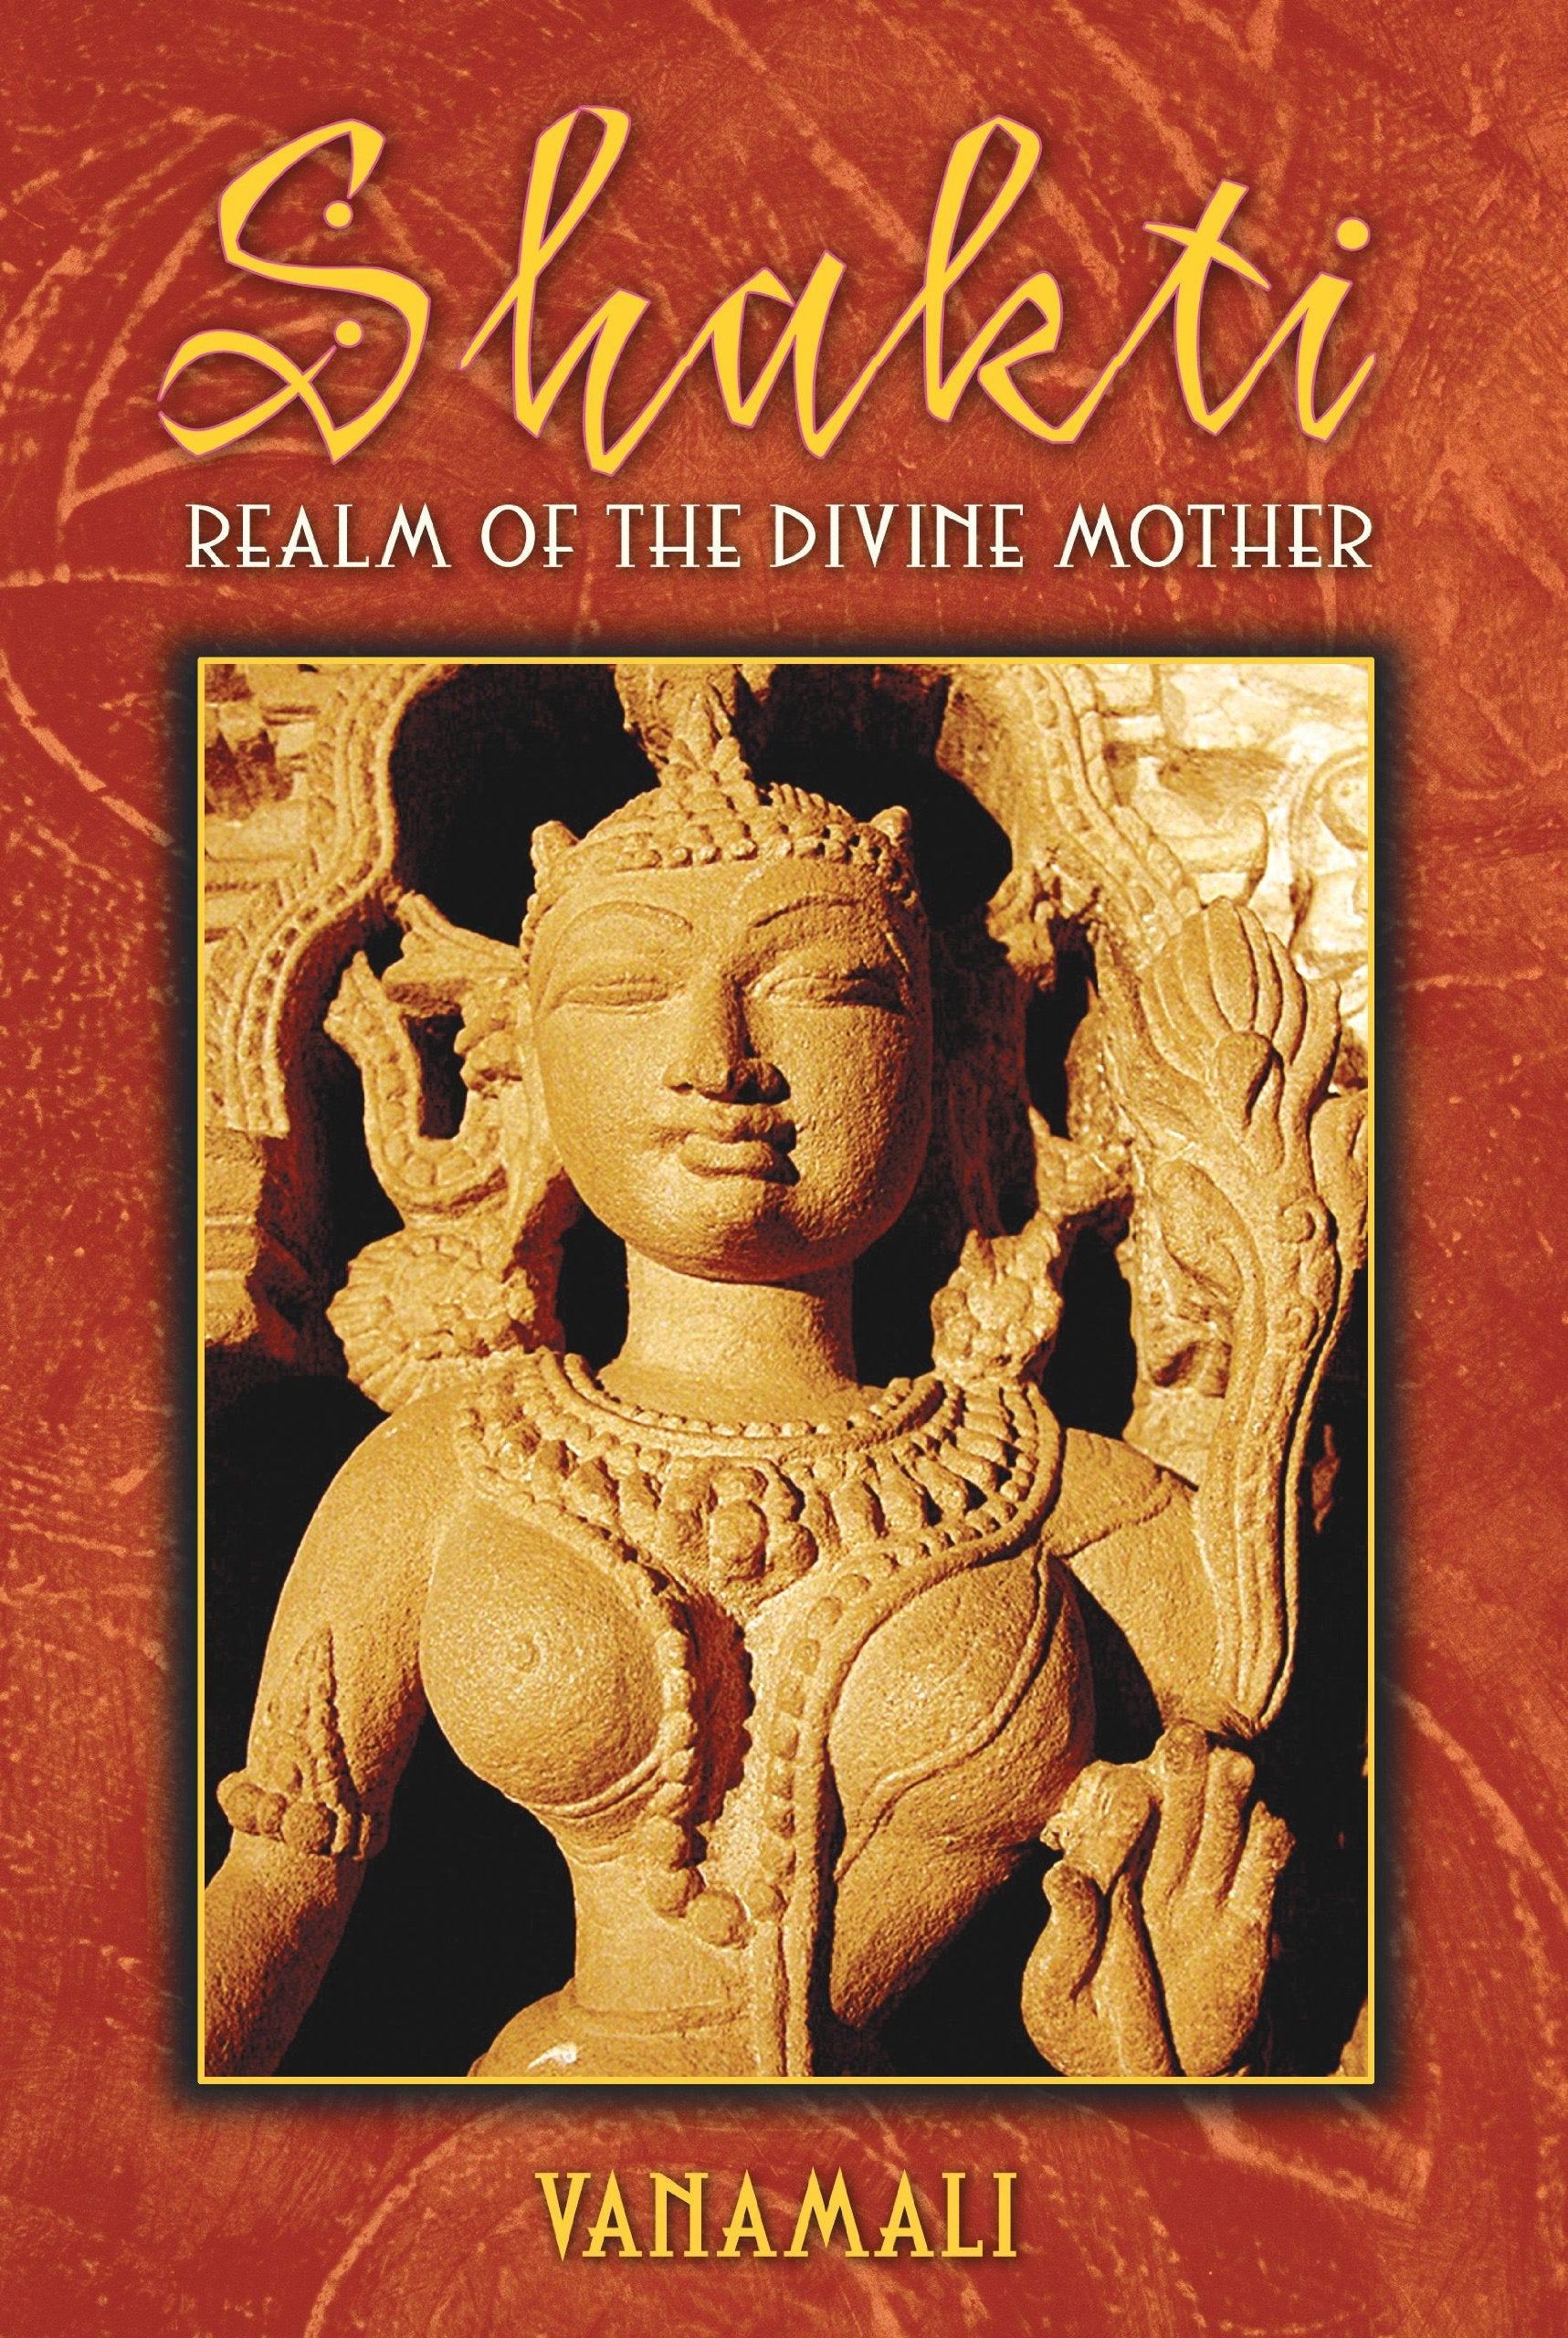 VANAMALI: 'SHAKTI - Realm Of The Divine Mother' - Book